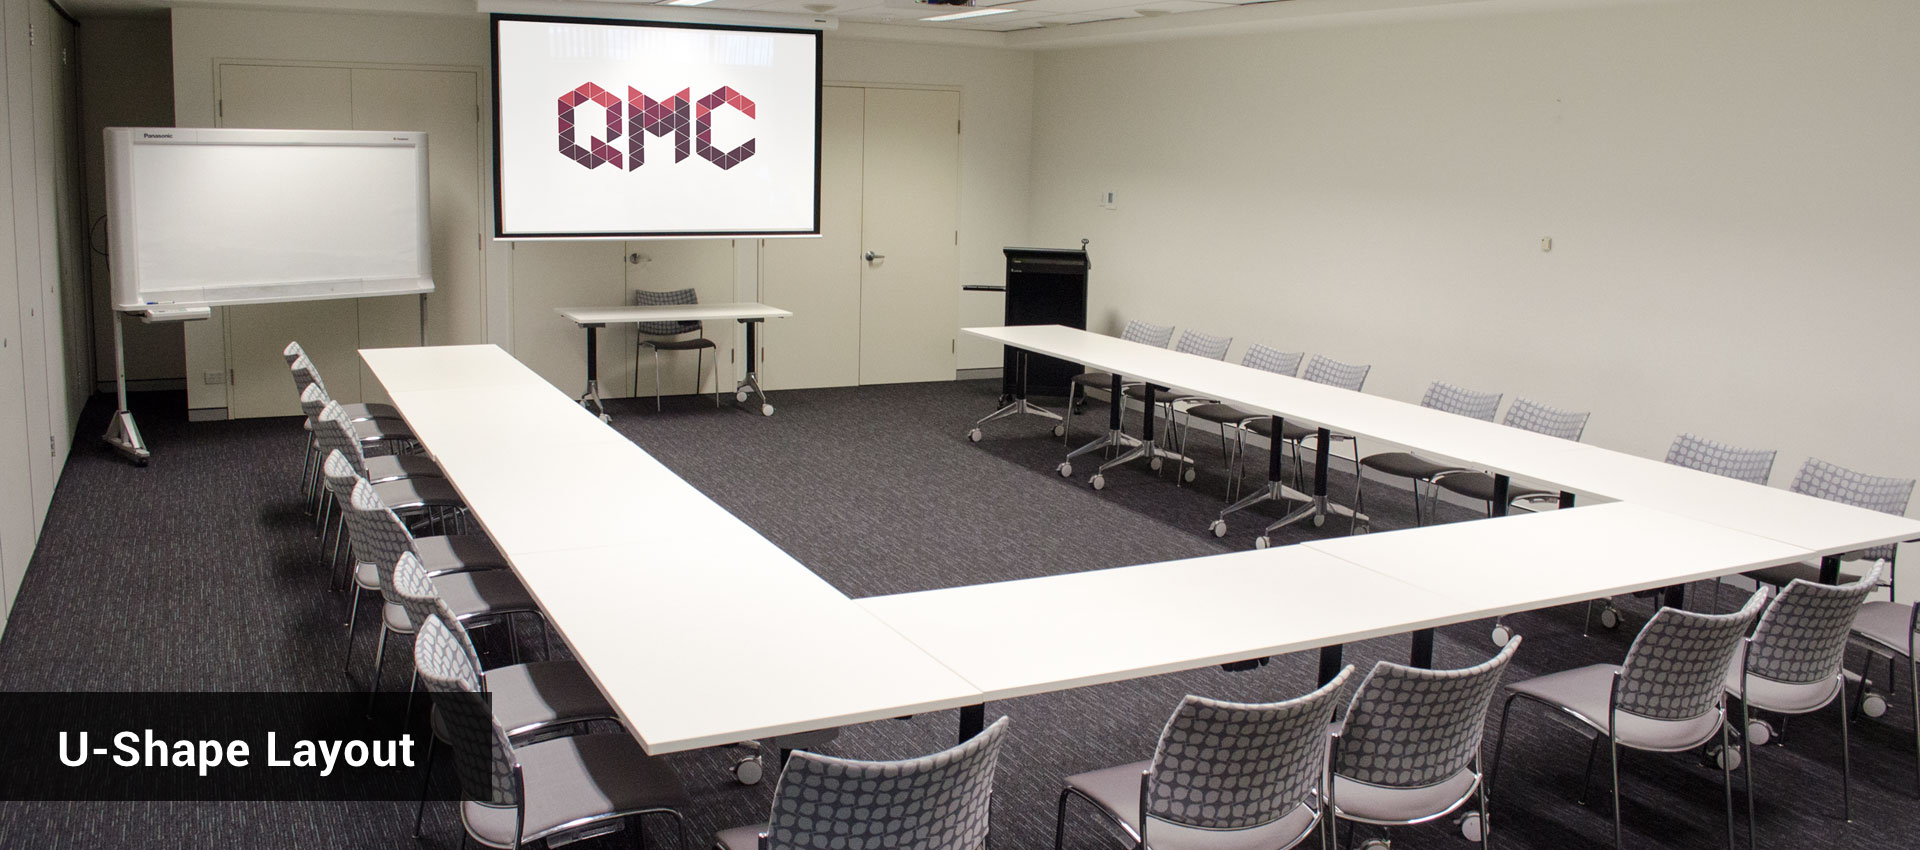 QMC Venue Hire Brisbane Multipurpose - Ushape